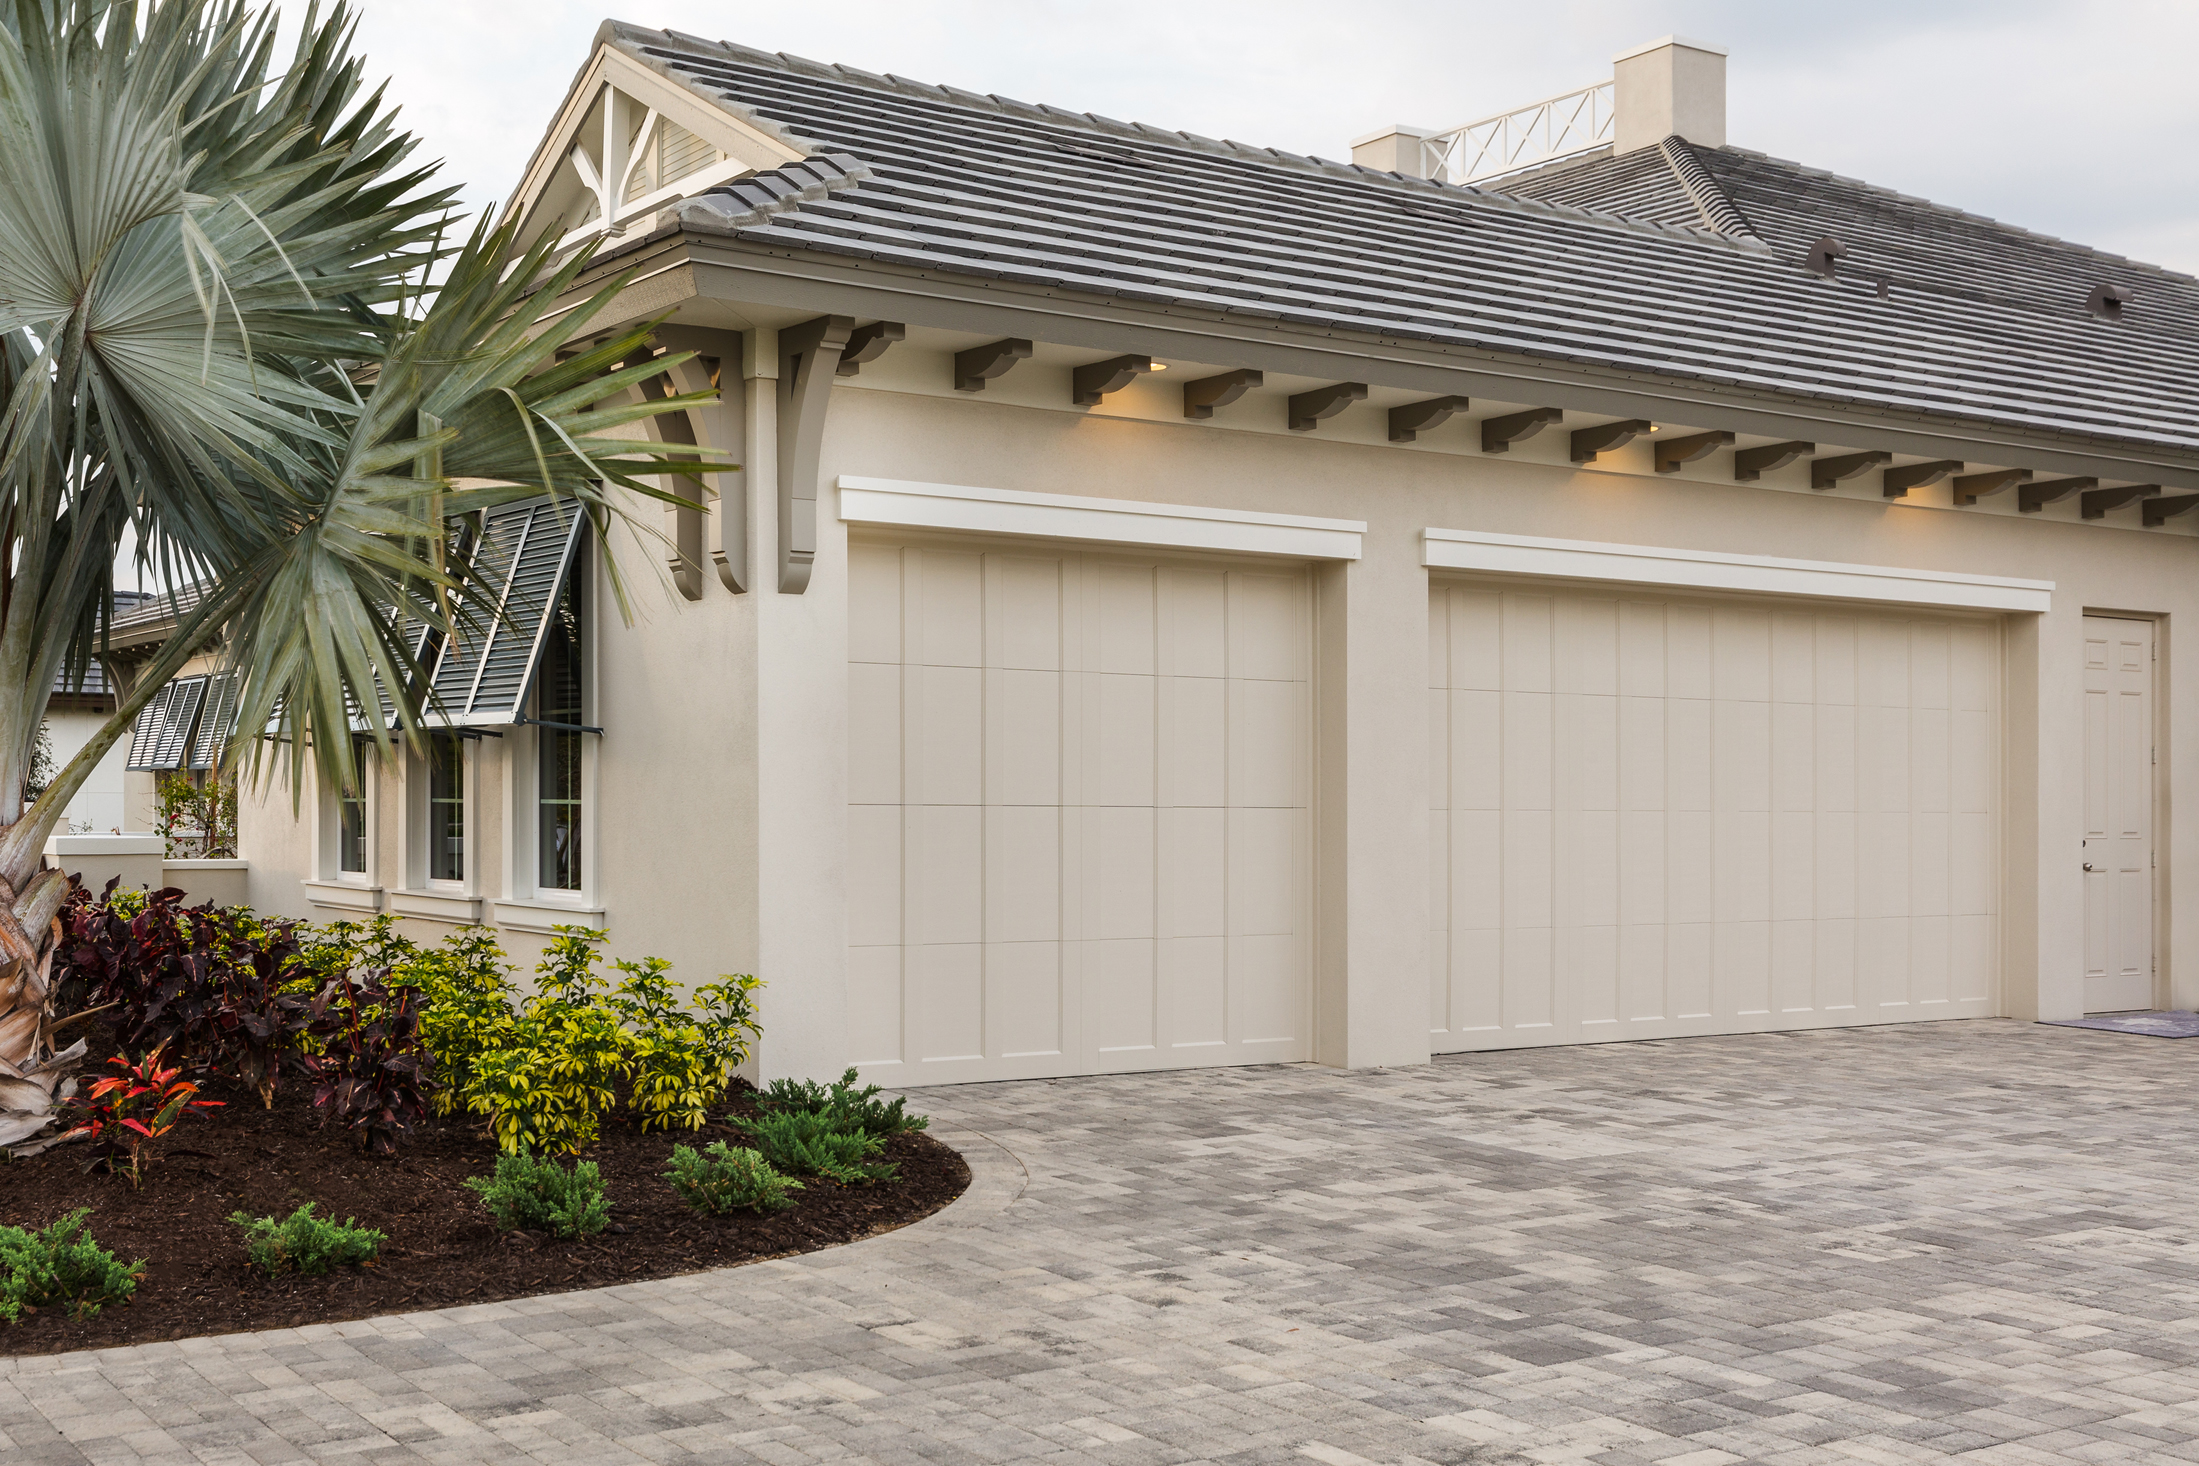 Clopay Grand Harbor D And D Garage Doors